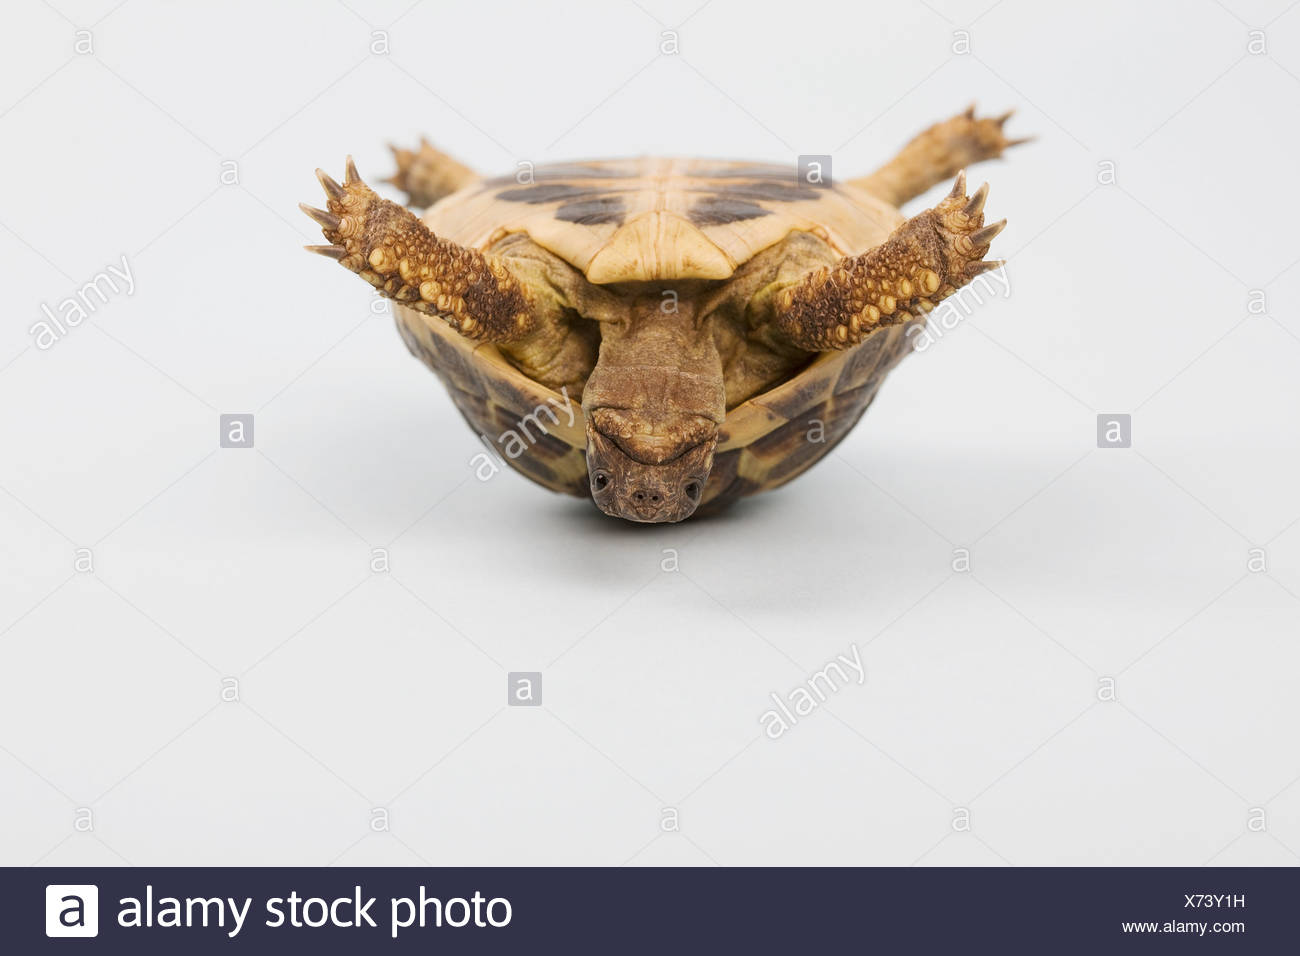 Tortoise upside down, studio shot - Stock Image